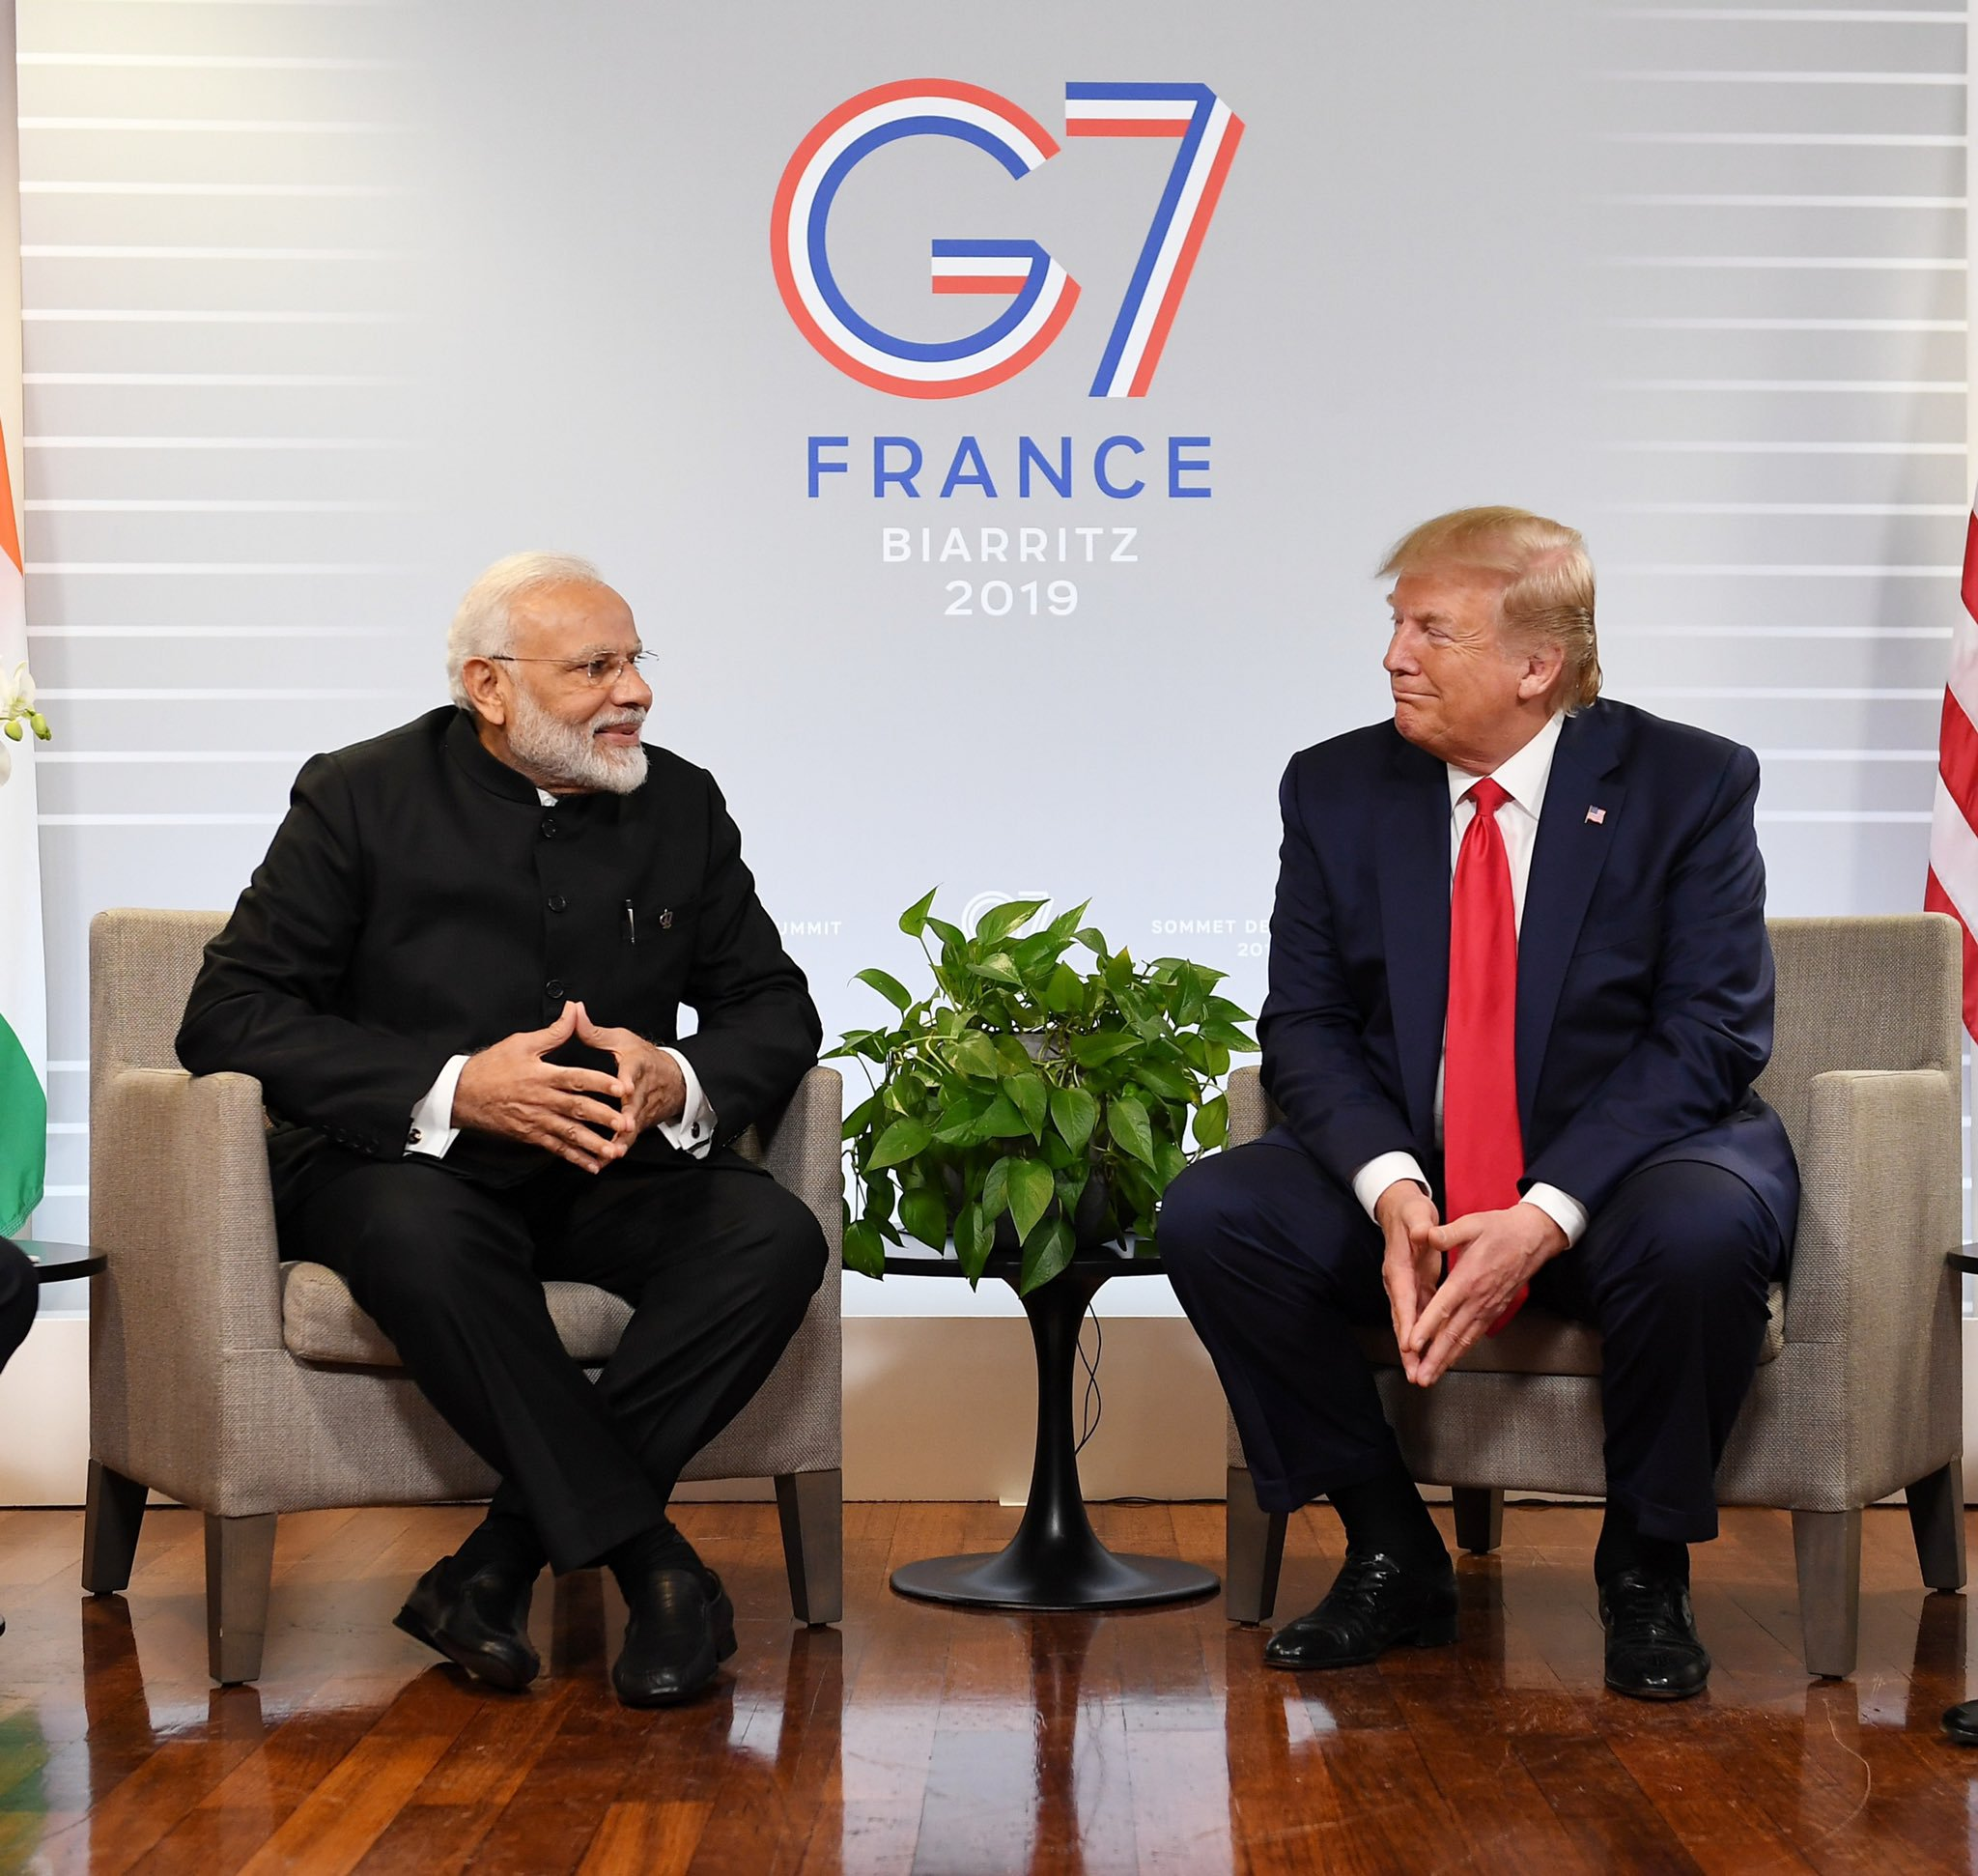 Modi and Trump had met on the sidelines of the G7 Summit earlier this week. Photo courtesy: Twitter/@narendramodi